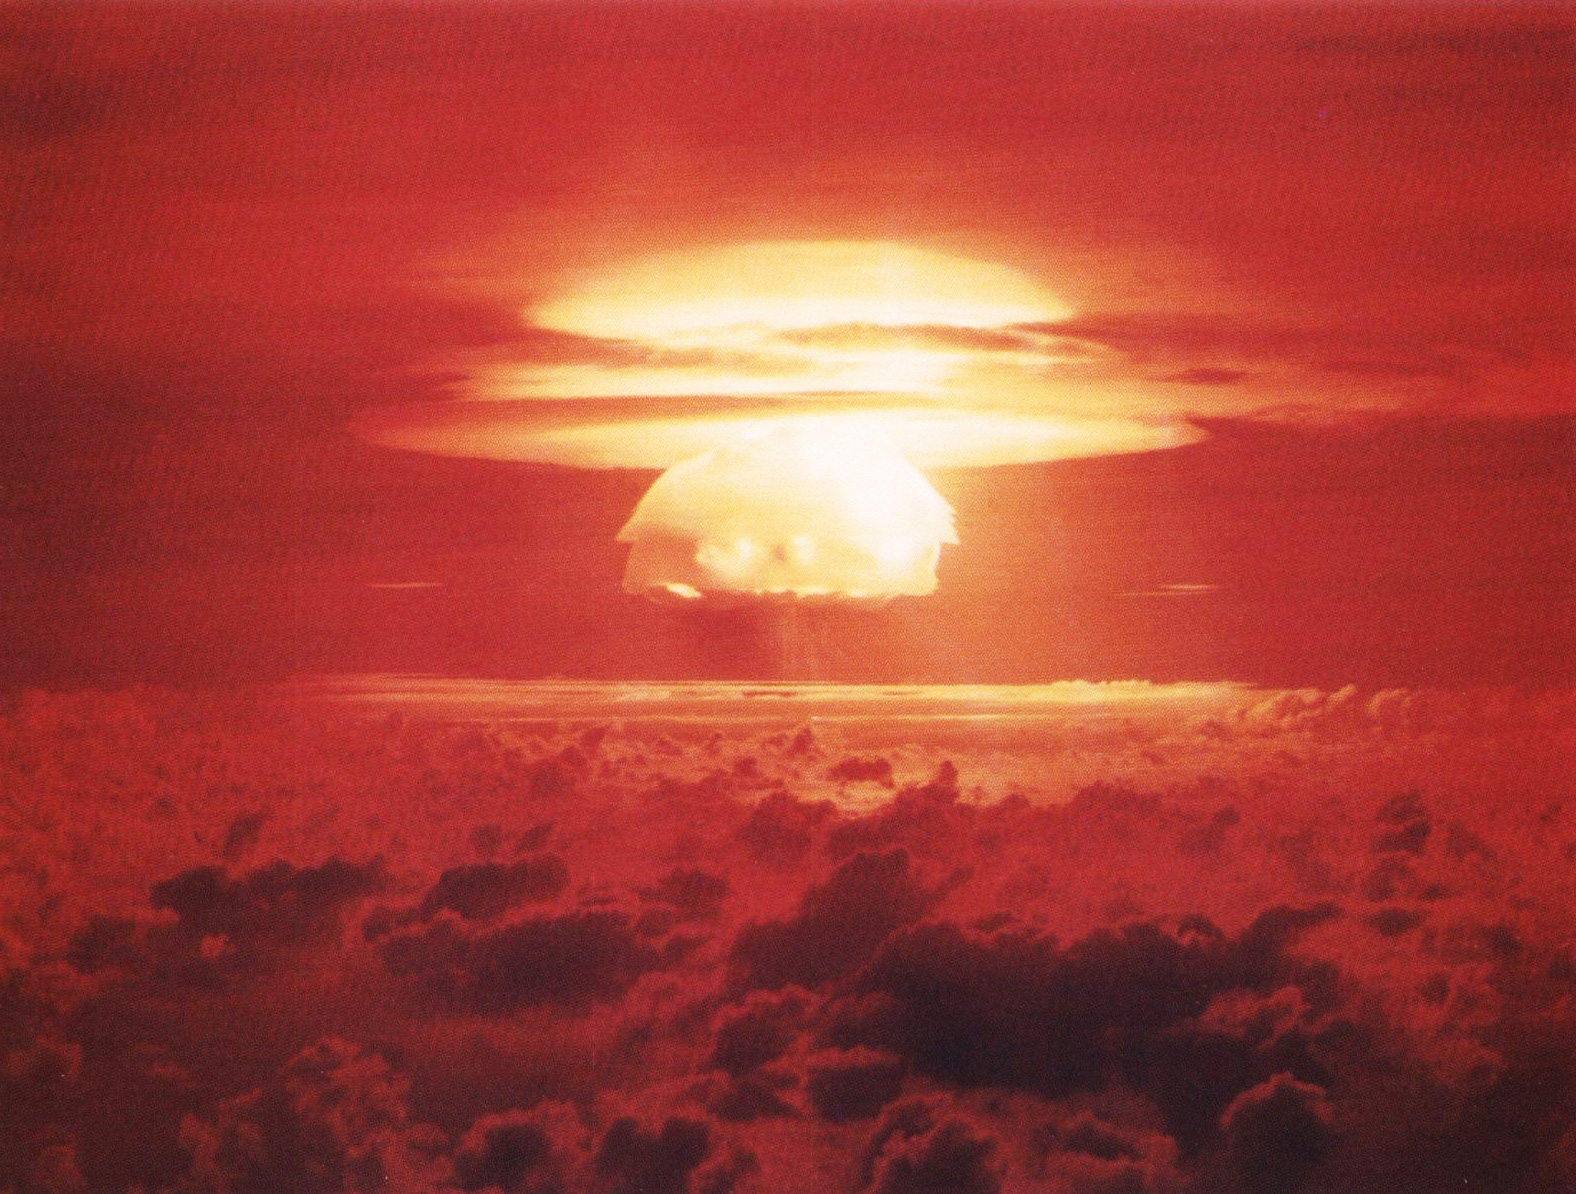 The mushroom cloud from the Castle Bravo detonation in 1954: the USA's first test of a practical deliverable fusion bomb. The yield was 15 megatons—three times more than the 5mt that was expected by its designers. To this day, it's still the USA's largest nuclear yield.